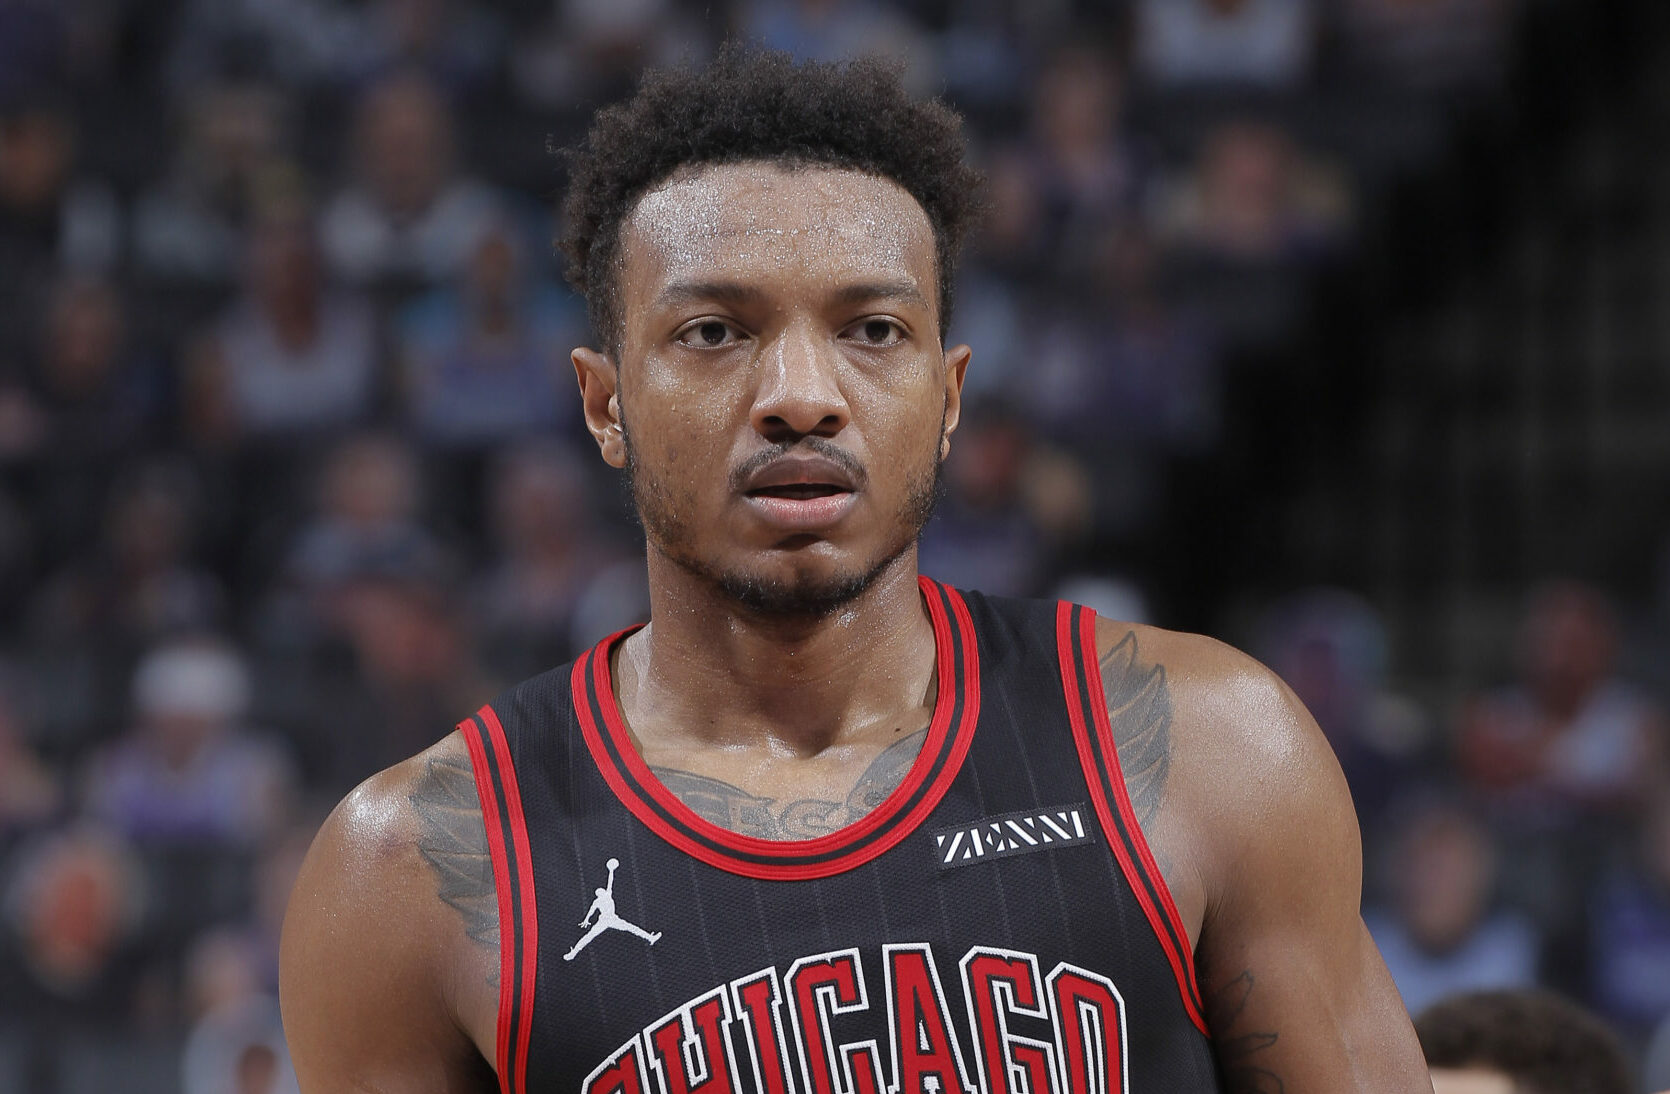 Bulls' Wendell Carter Jr. (quad) out at least 4 weeks